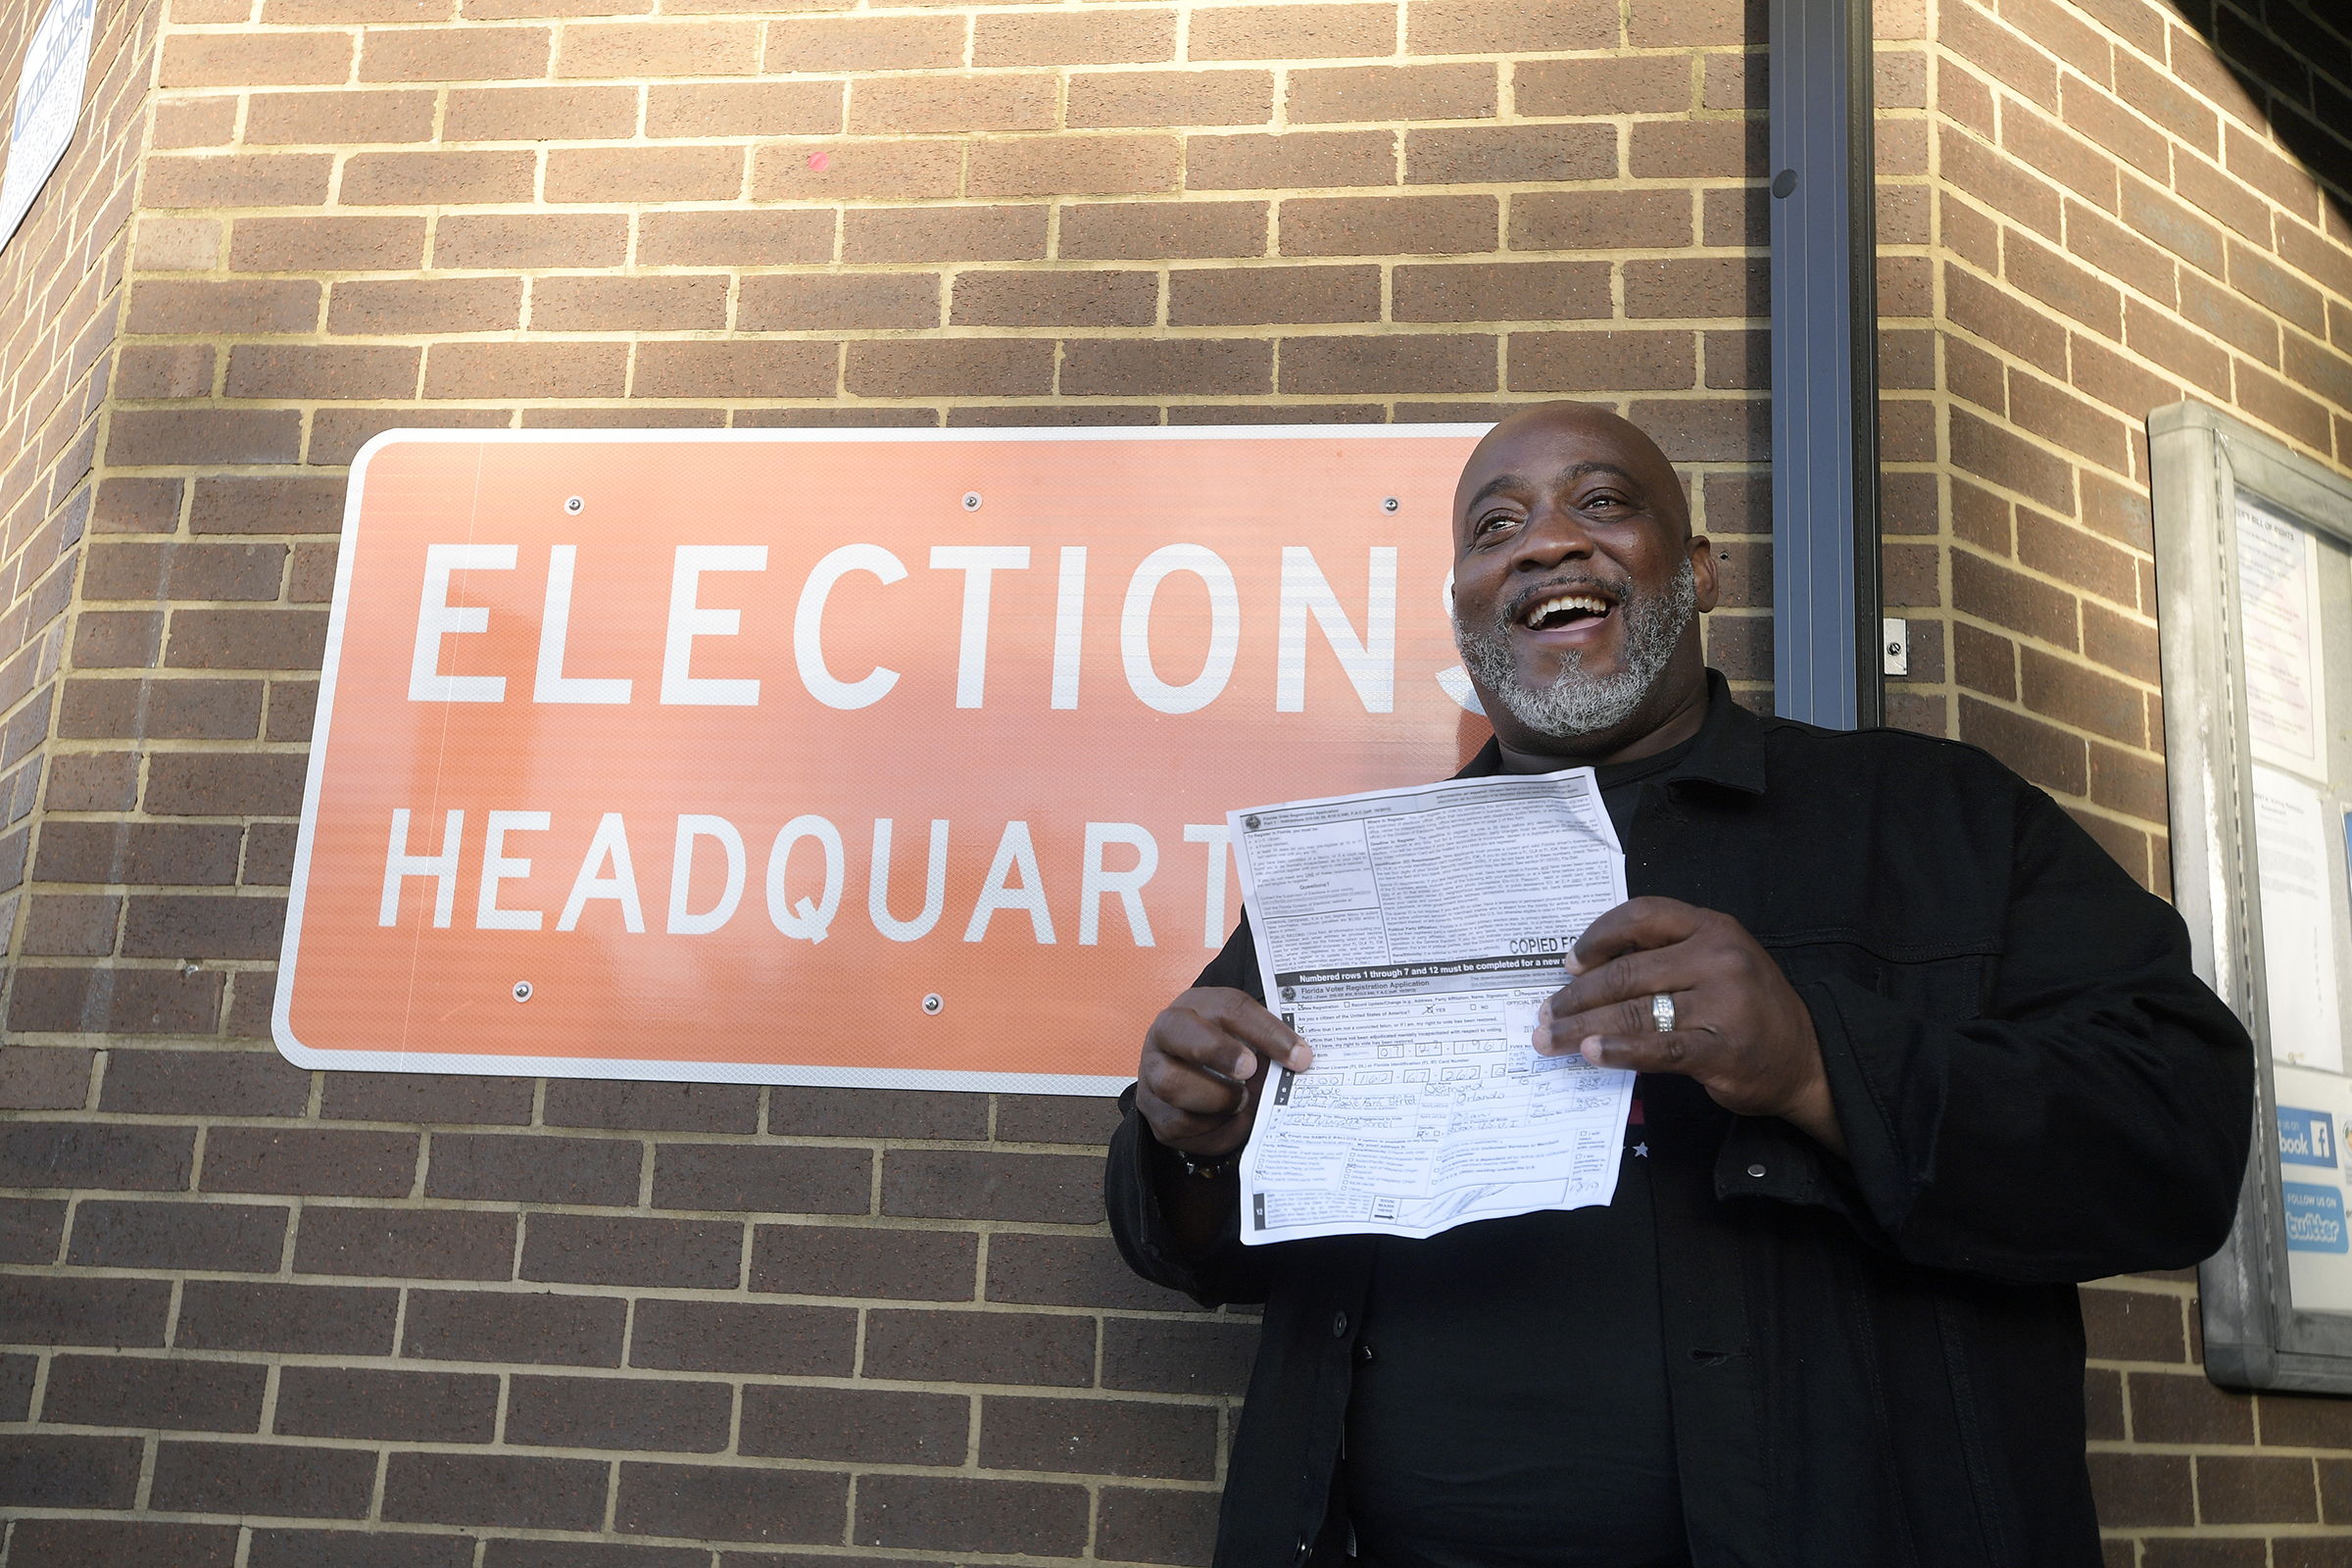 Desmond Meade displays a copy of his voter registration form outside the Orange County Supervisor of Elections office in Orlando on Jan. 8, 2019, after registering to vote. MUST CREDIT: Photo for The Washington Post by Phelan M. Ebenhack